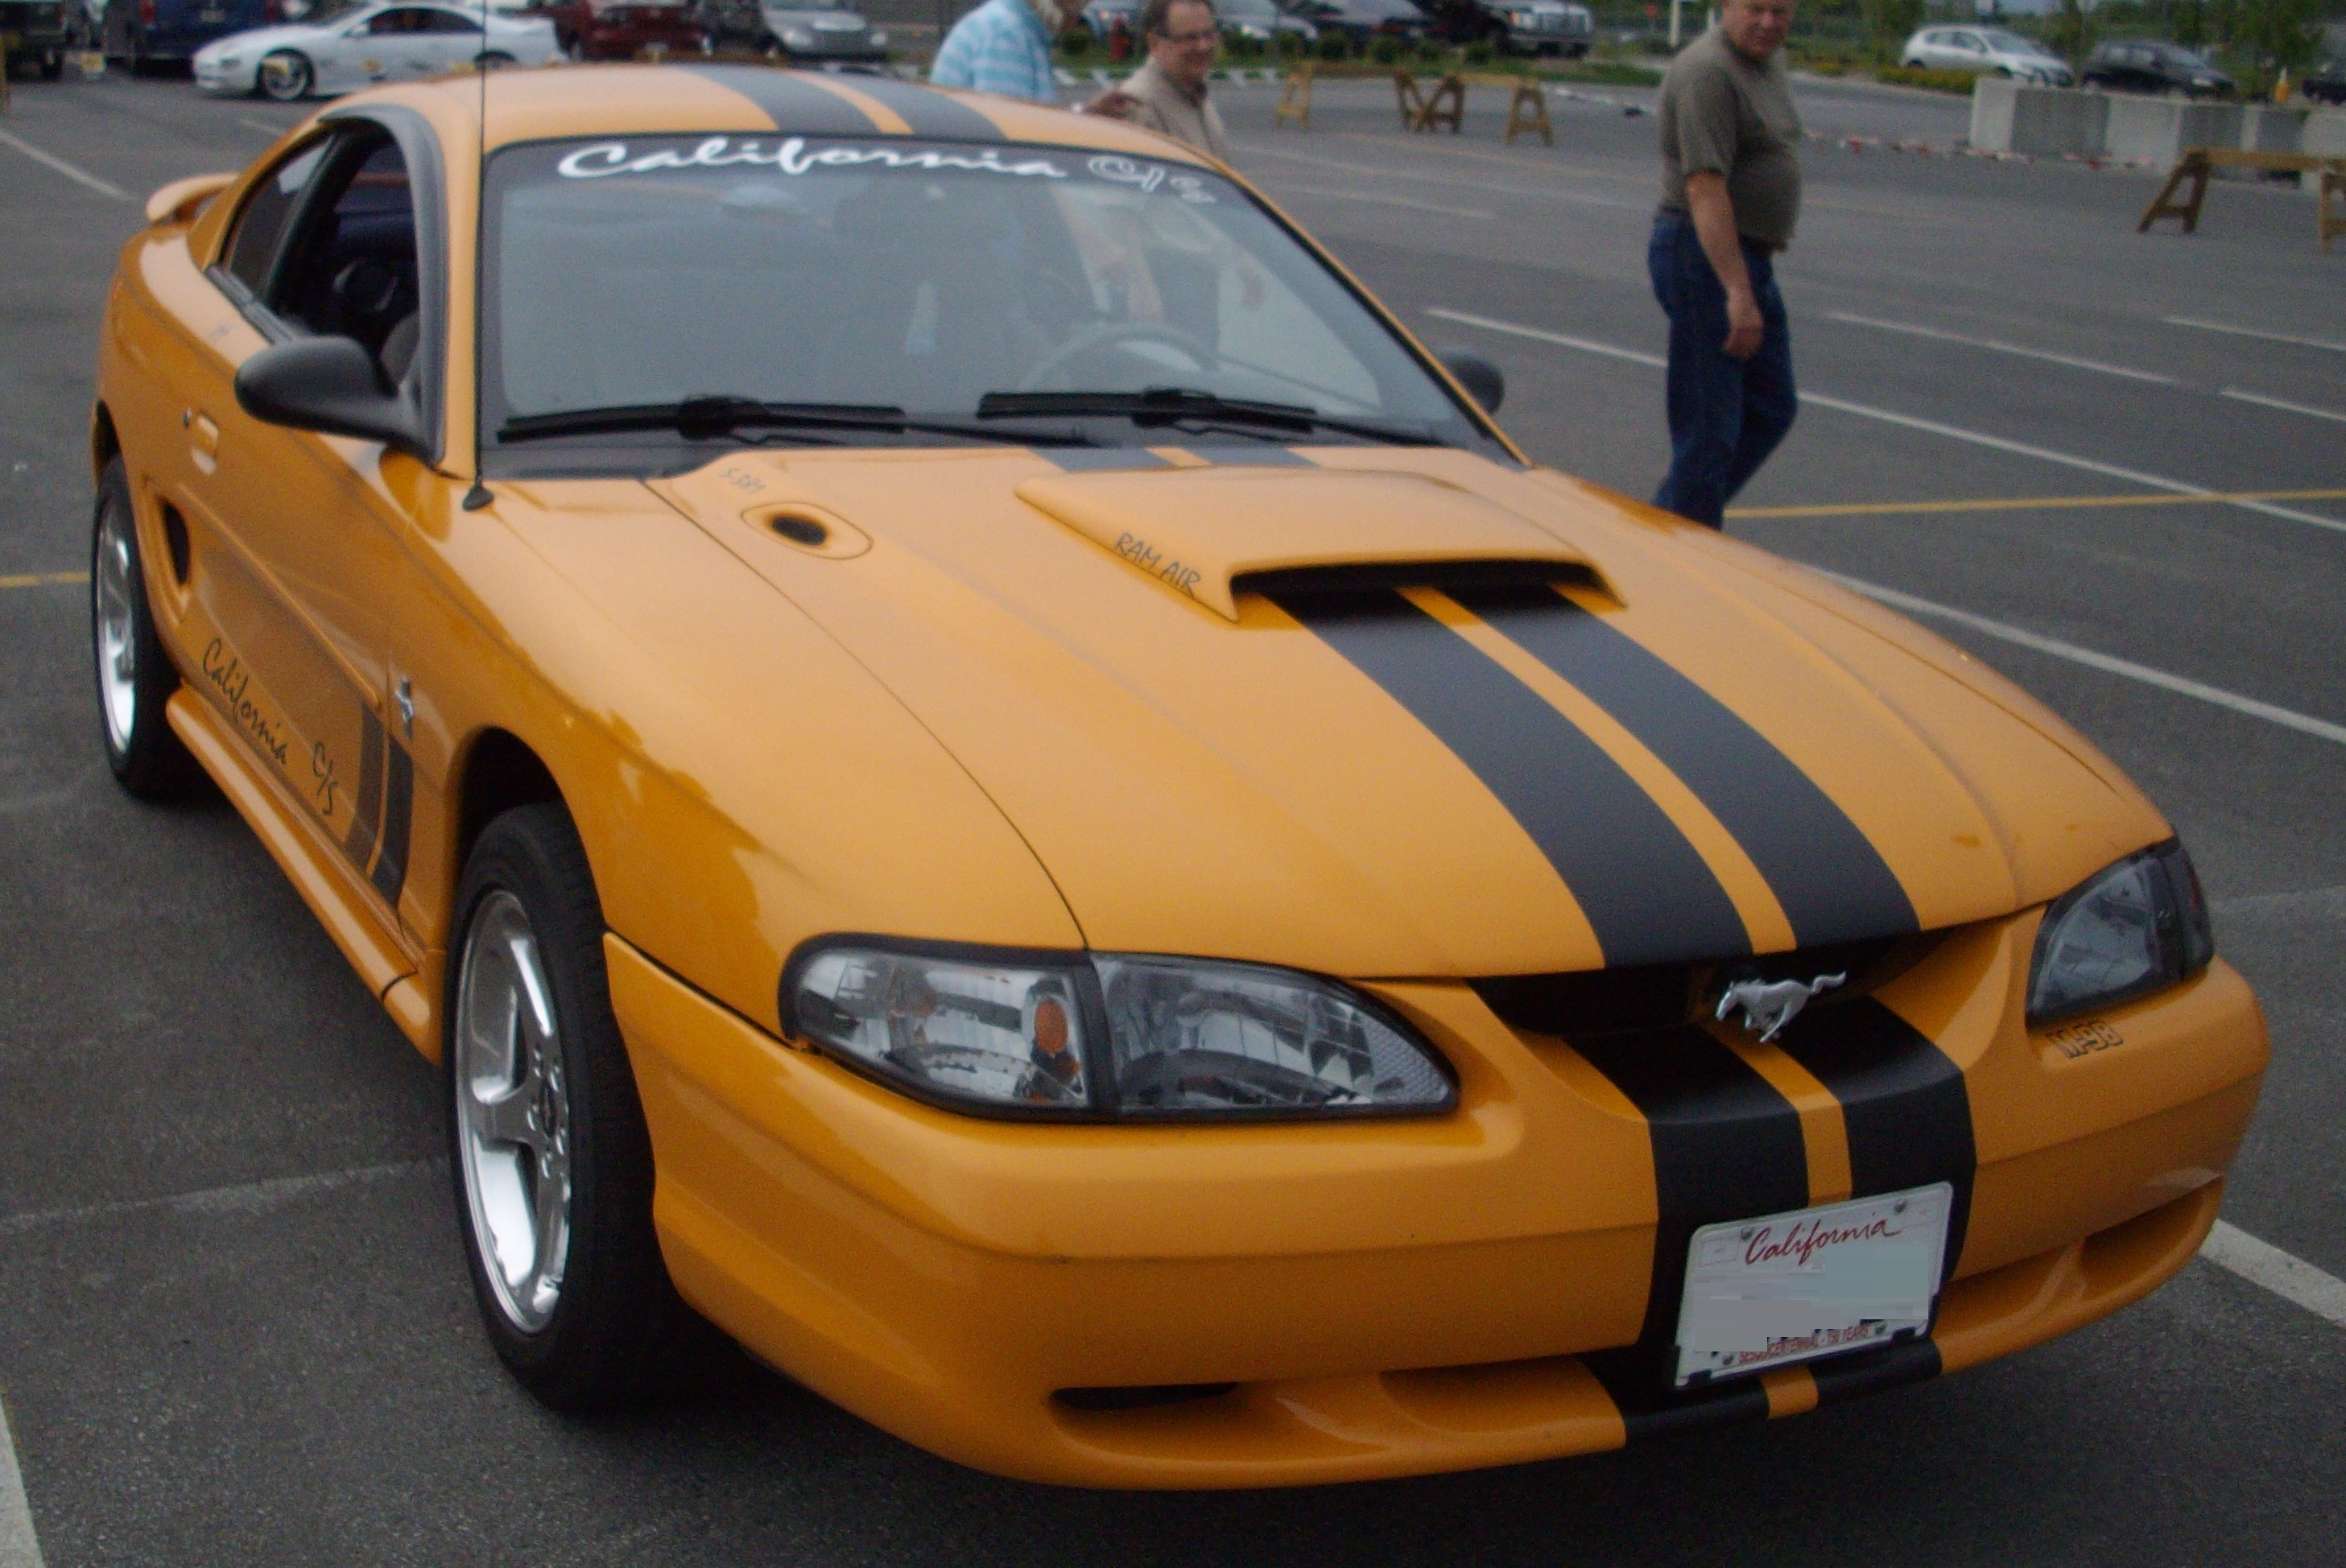 Ford_Mustang_SN-95_%28Les_chauds_vendred